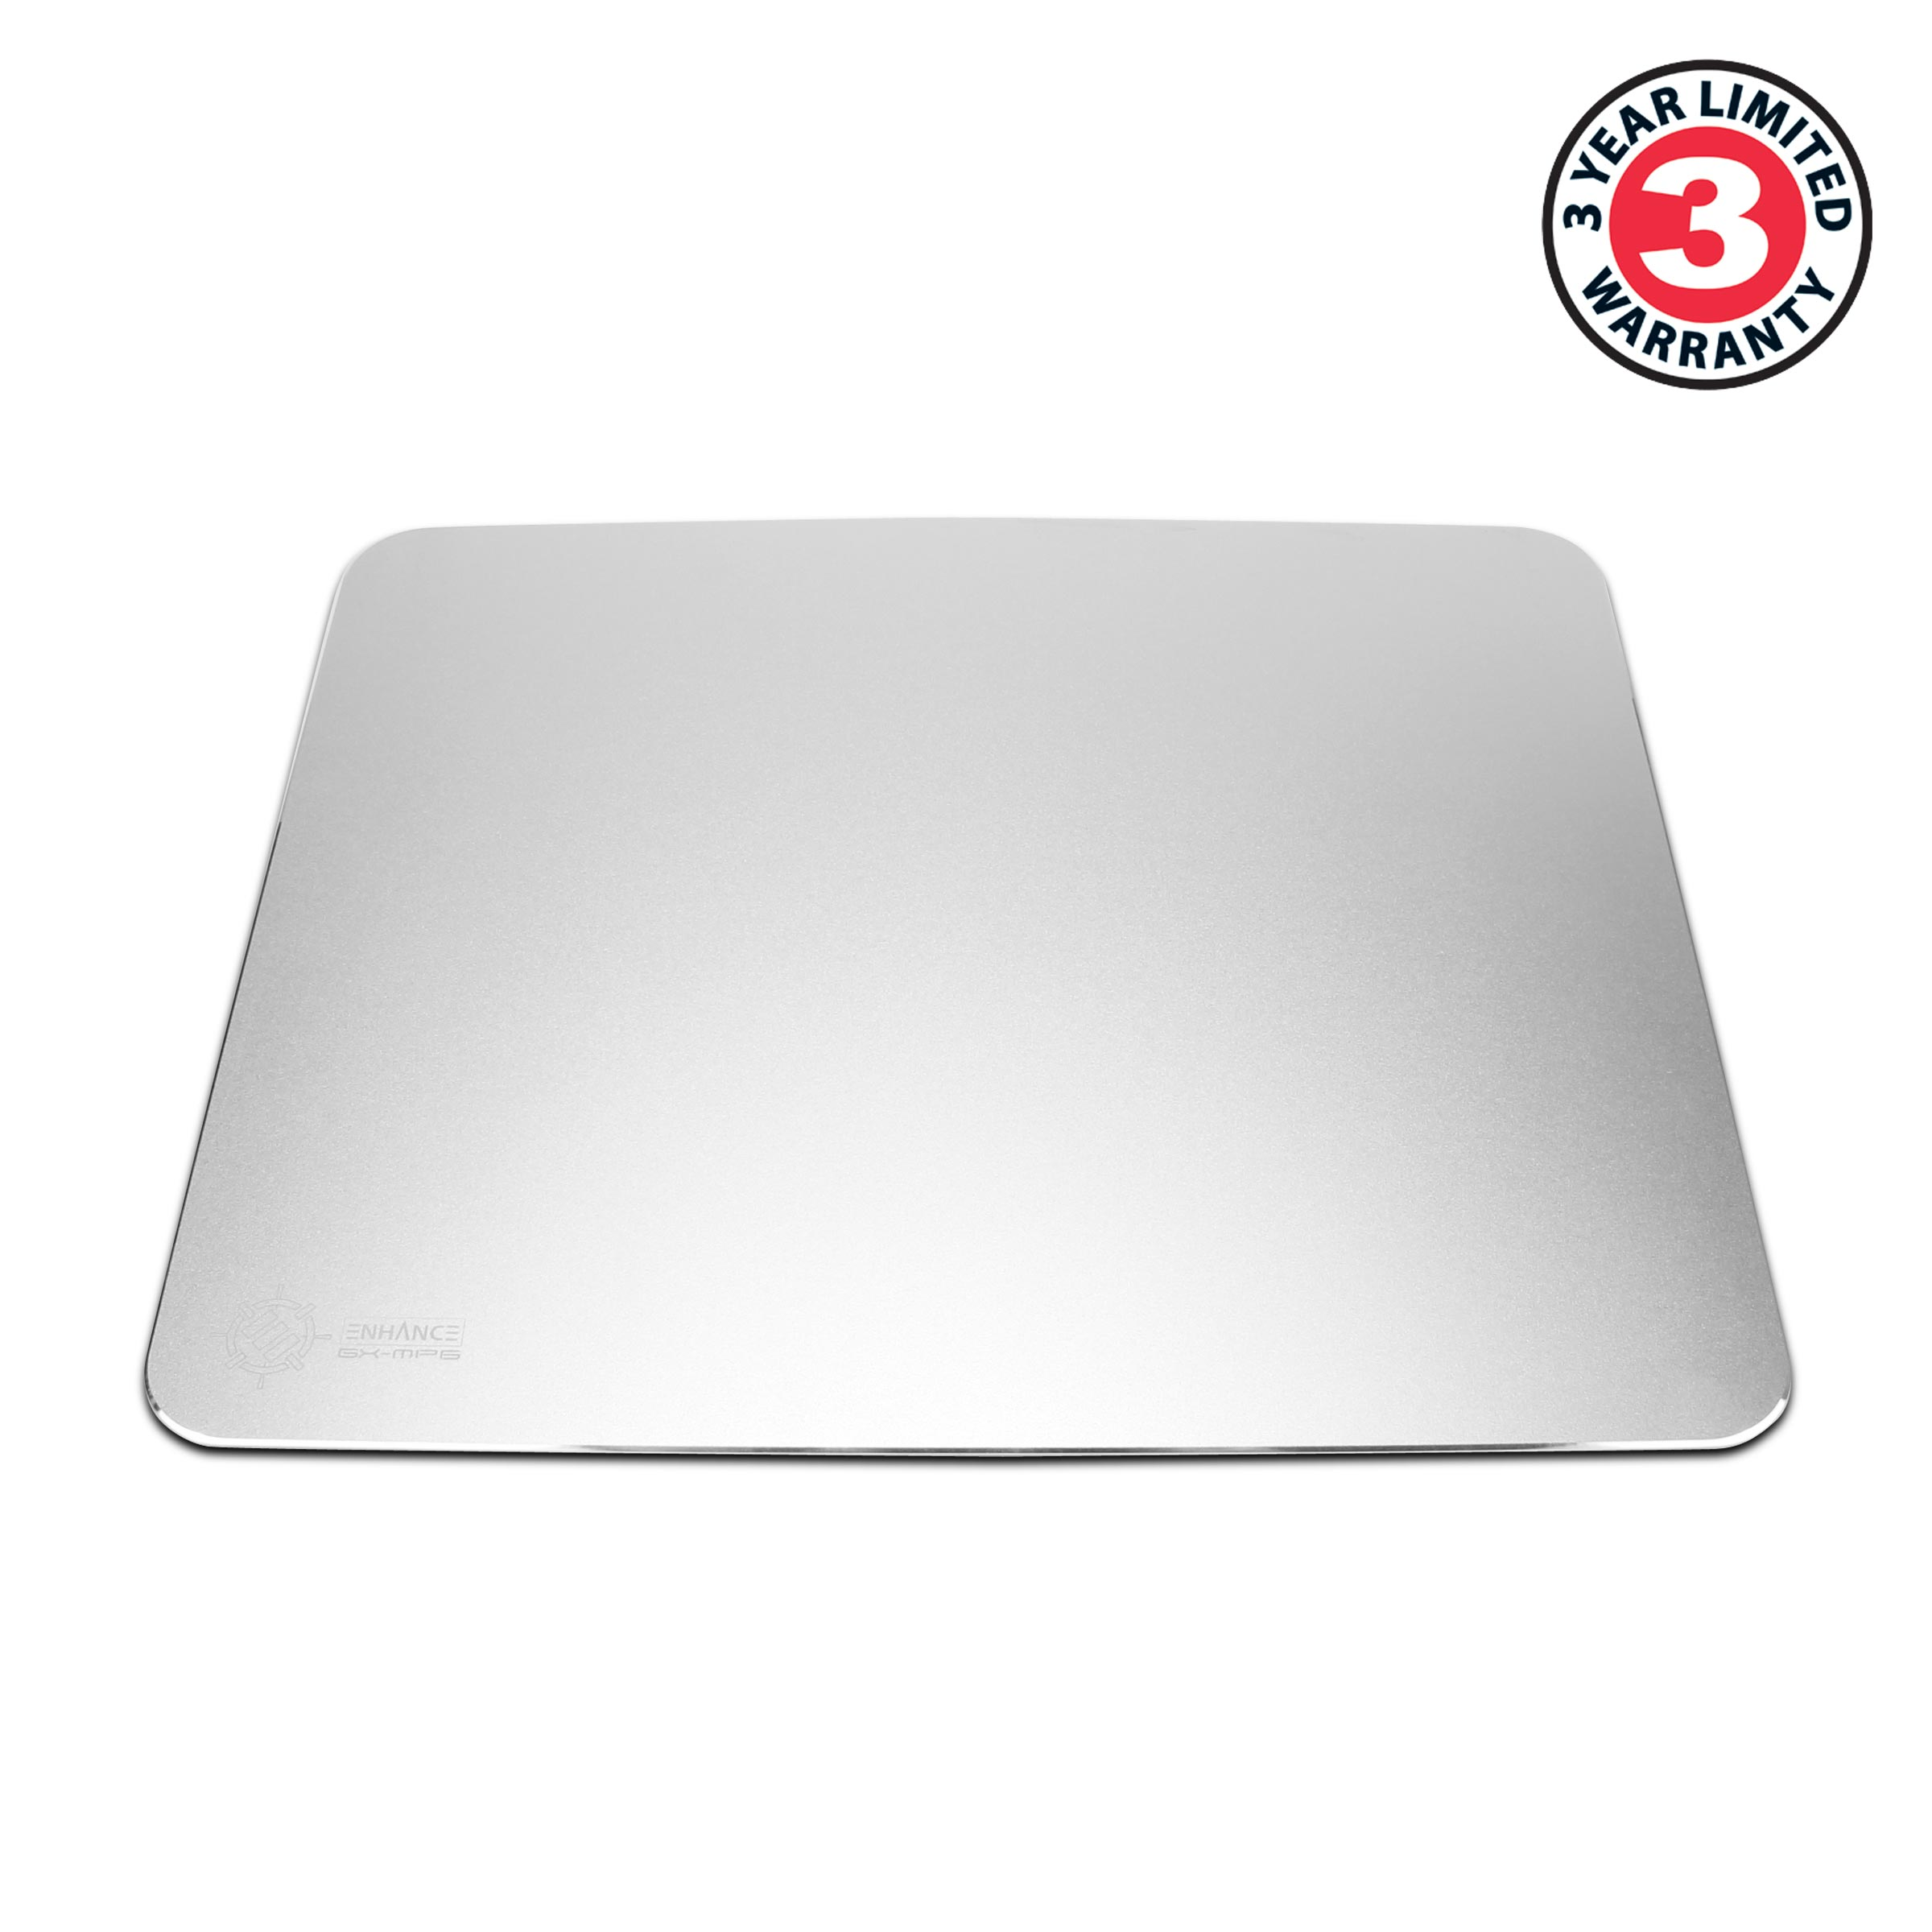 ENHANCE GX-MP6 Gaming Aluminum Mouse Pad with Natural Rubber Backing & Low-Friction Tracking Surface 1